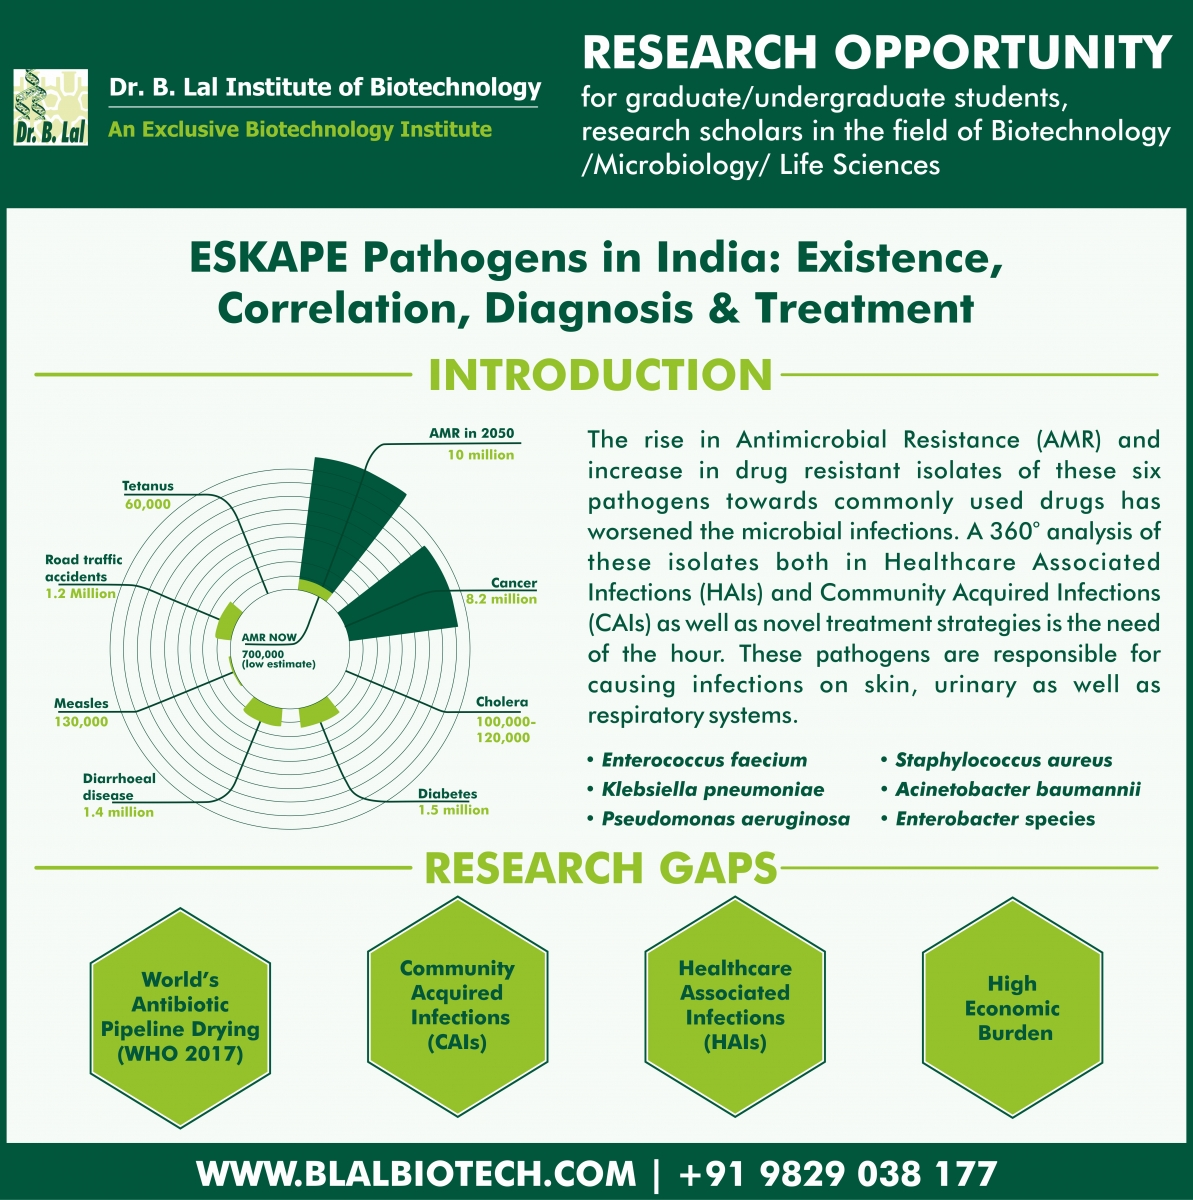 Research Opportunity